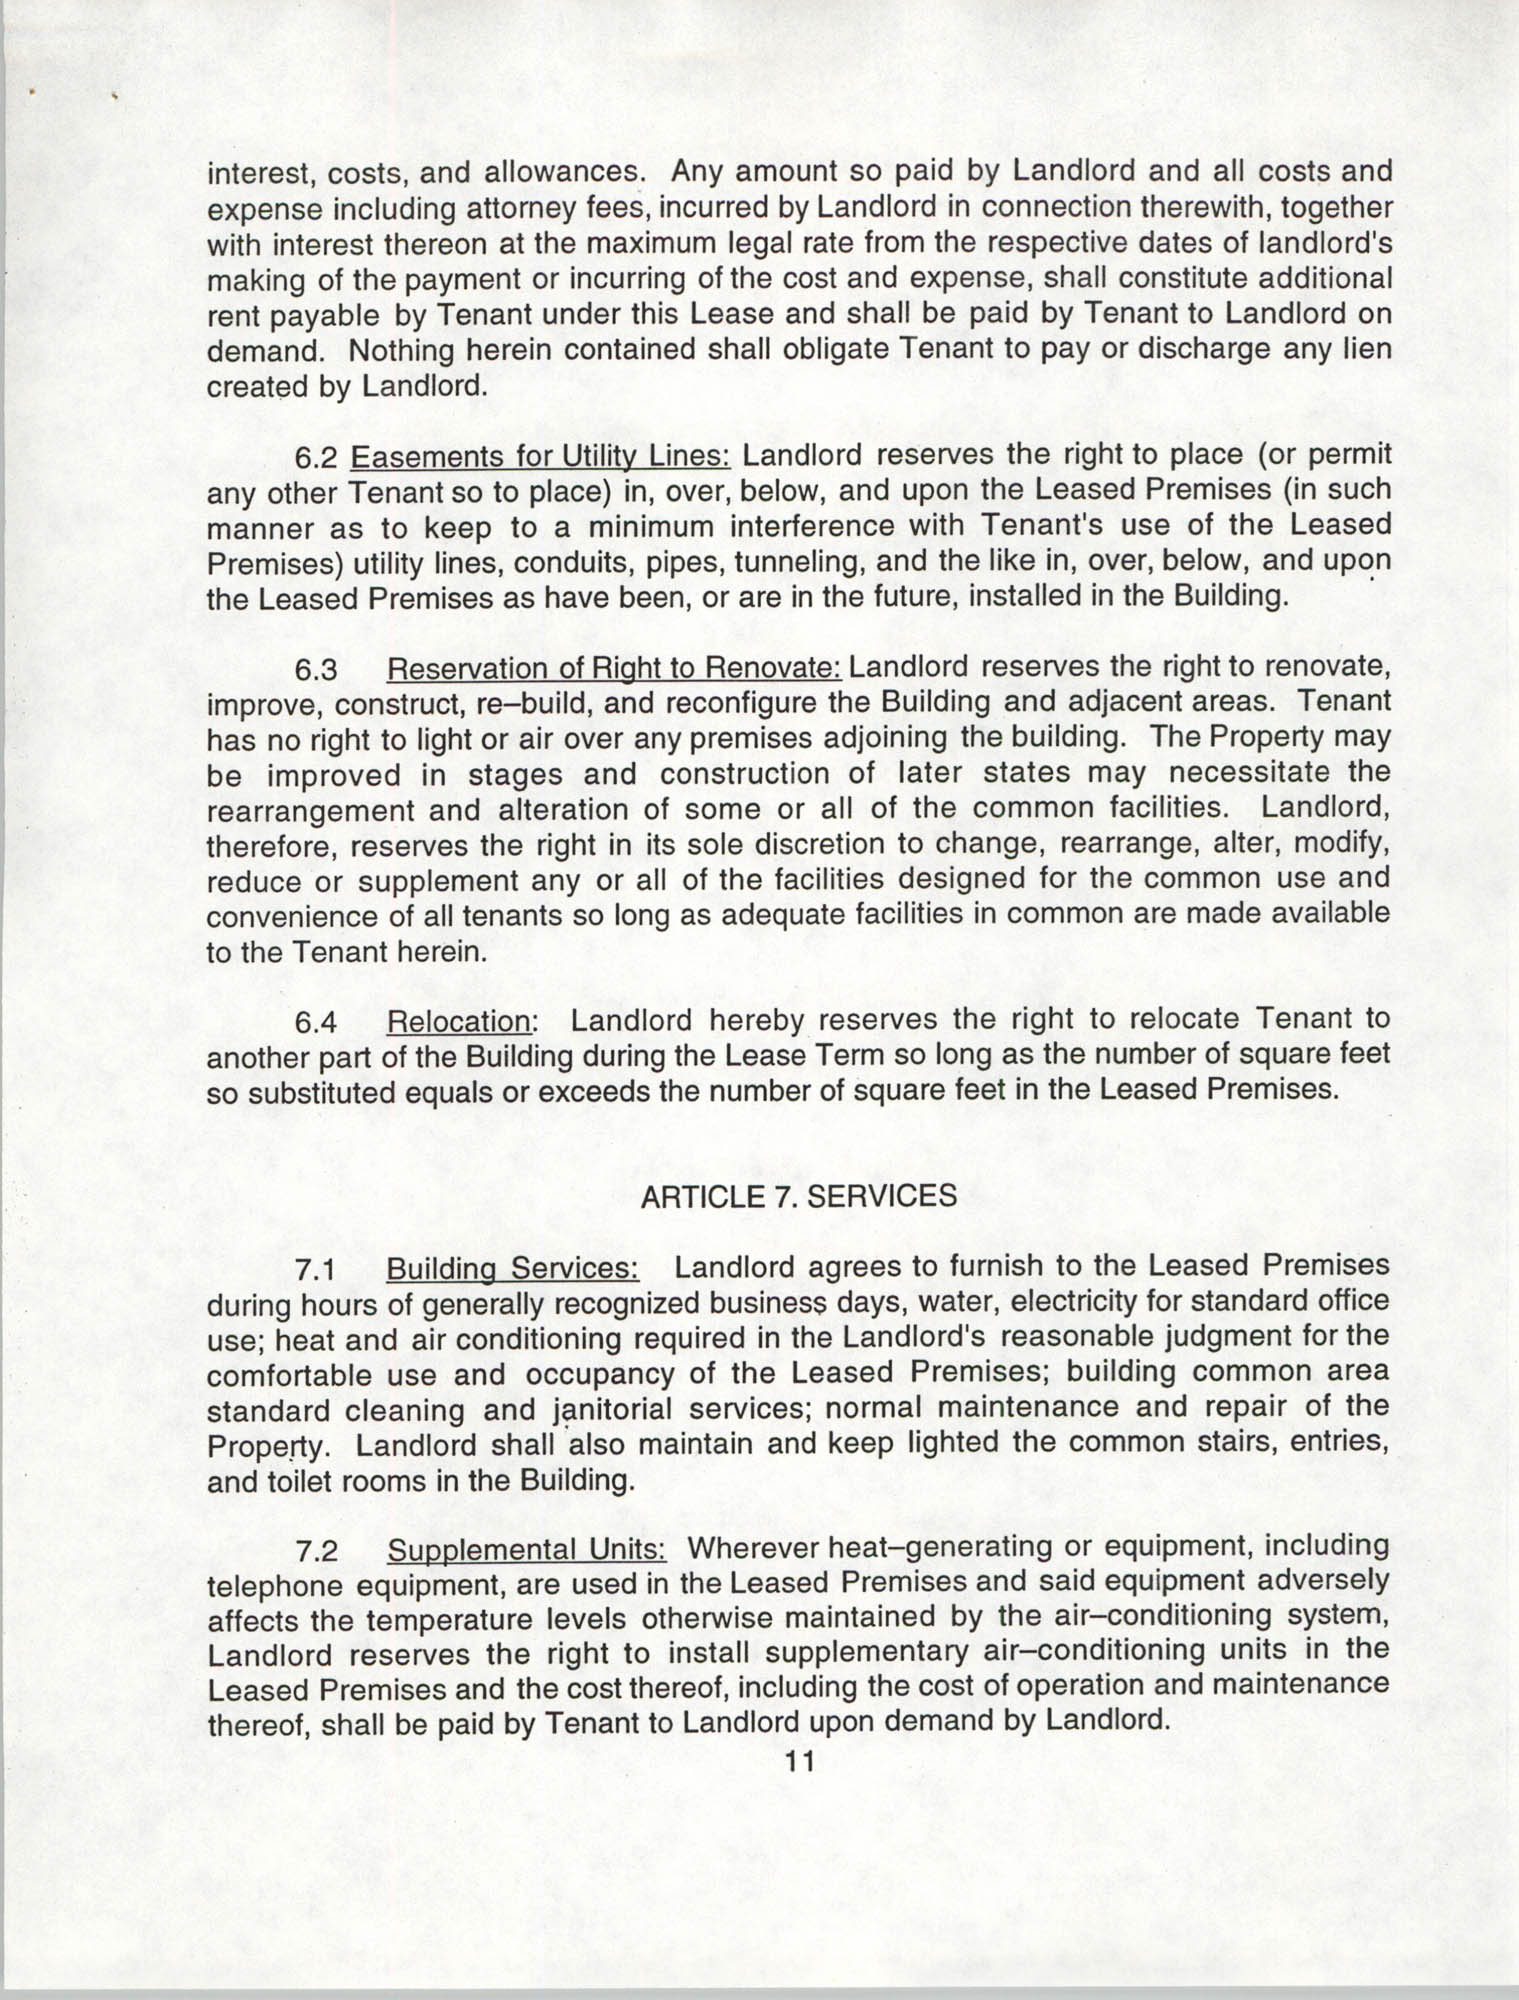 Charleston Branch of the NAACP Leasing Agreement, July 1994 to June 1995, Page 11